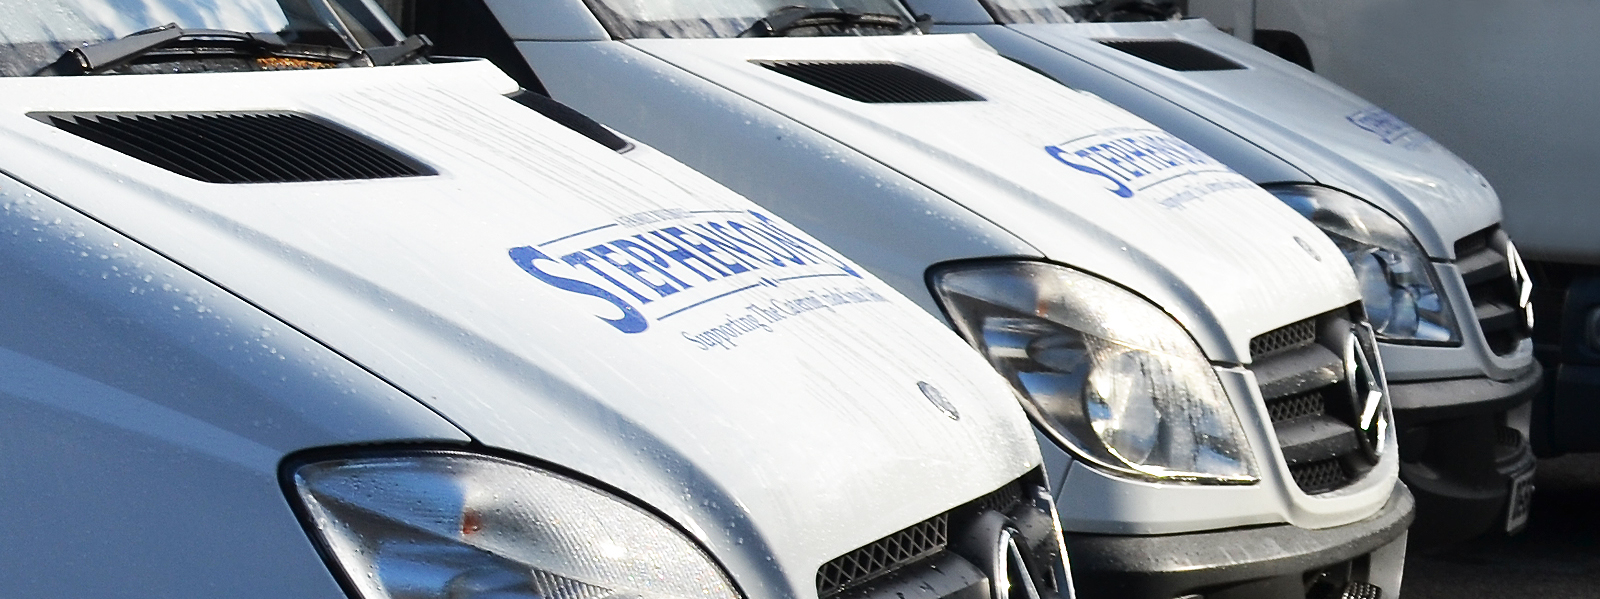 Stephensons maintain a dedicated fleet of delivery vans